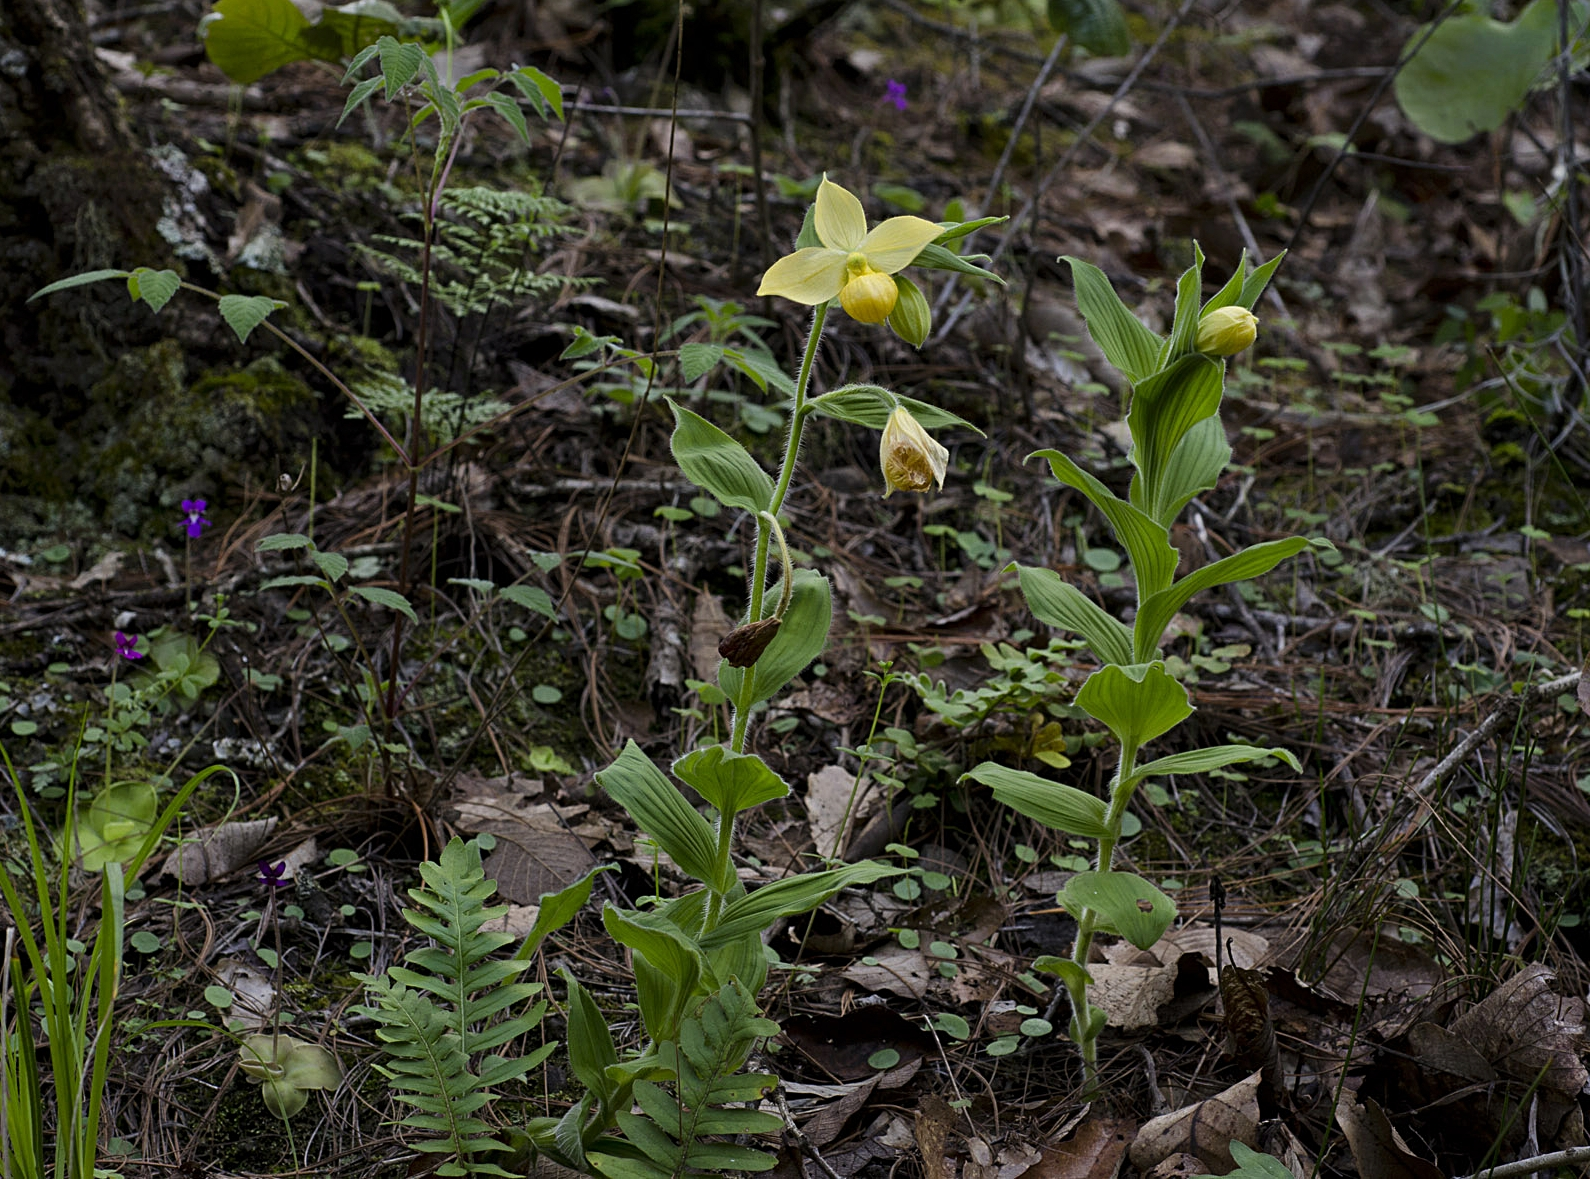 Cypripedium molle  plants in Oaxacan pine-oak association, together with flowering  Pinguicula moranensis var. neovolcanica ( Image: F. Muller).